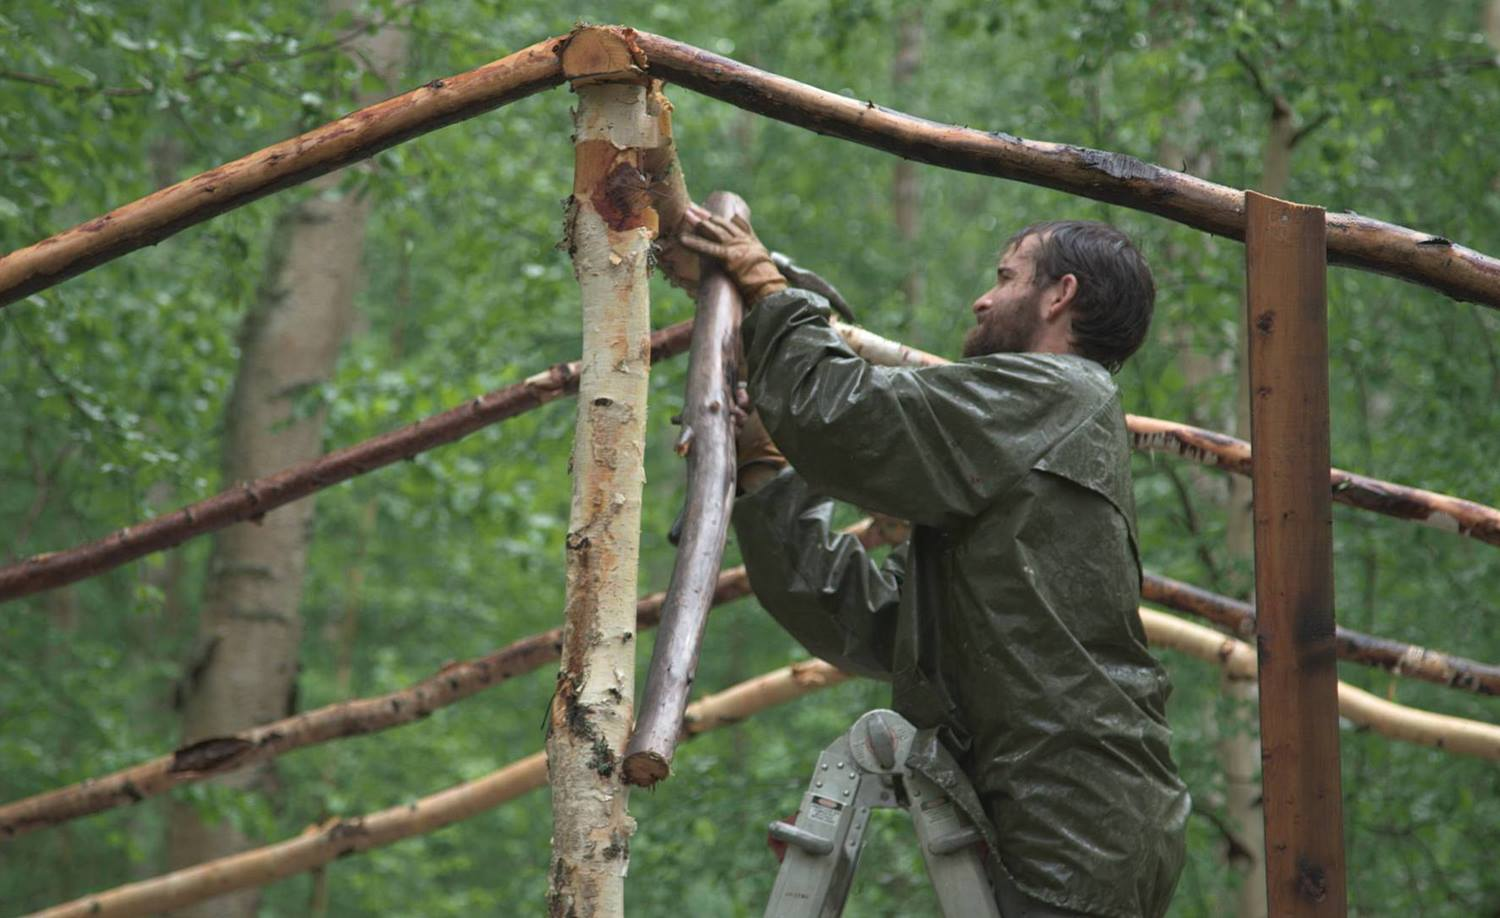 Peter Bird, Audrey's husband, building a birch-tree platform for their outdoor birth. Photo courtesy of Audrey Bird.